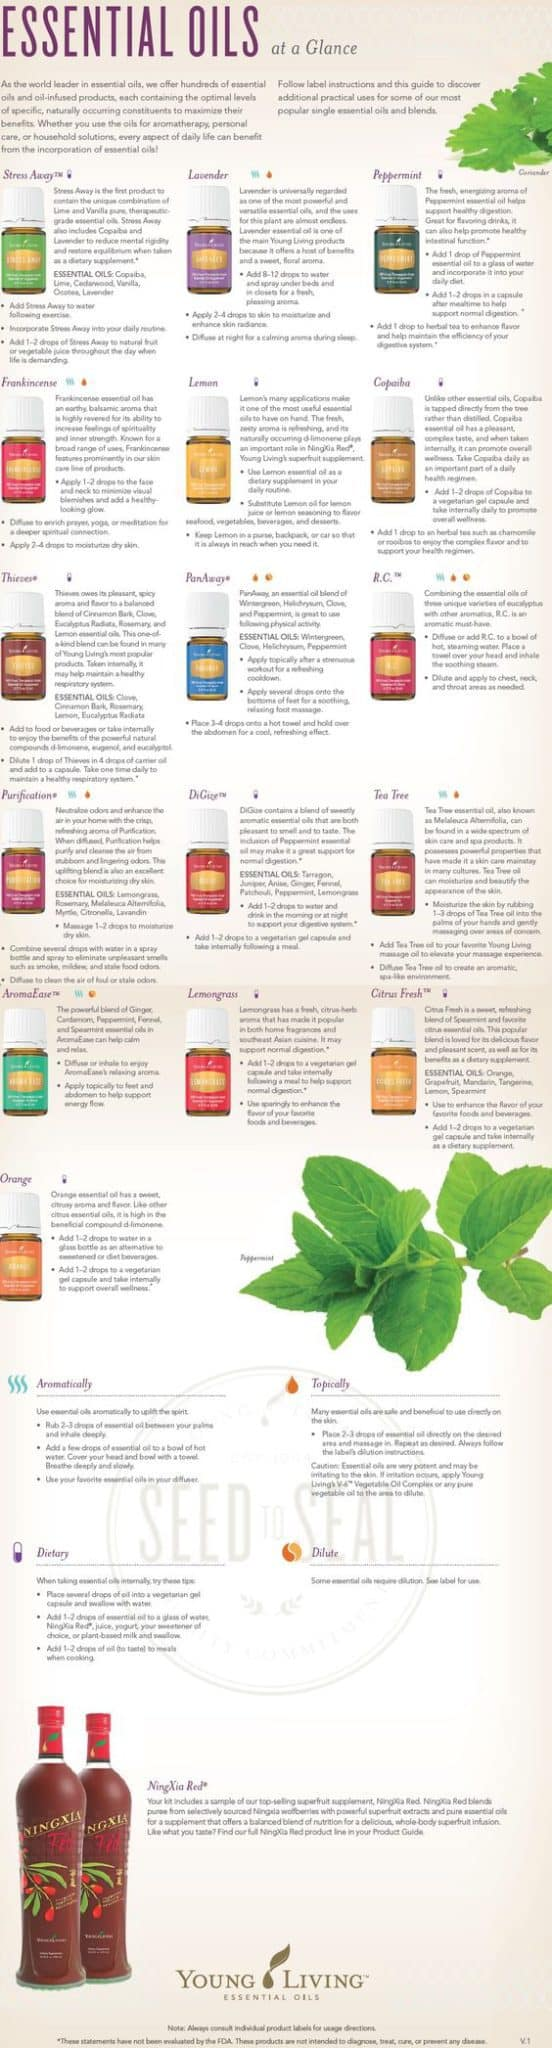 These essential oil hacks for beginners are AMAZING! I was looking everywhere for a resource on learning about essential oils. From young living guides, diffusers, blends, recipes, remedies, and essential oil home hacks this article covers it all! Pin this for later! #EssentialOils #Diffusers #Blends #HomeHacks #EssentialOilHacks #YoungLiving #Natural #Health #Wellness #MindBodySoul